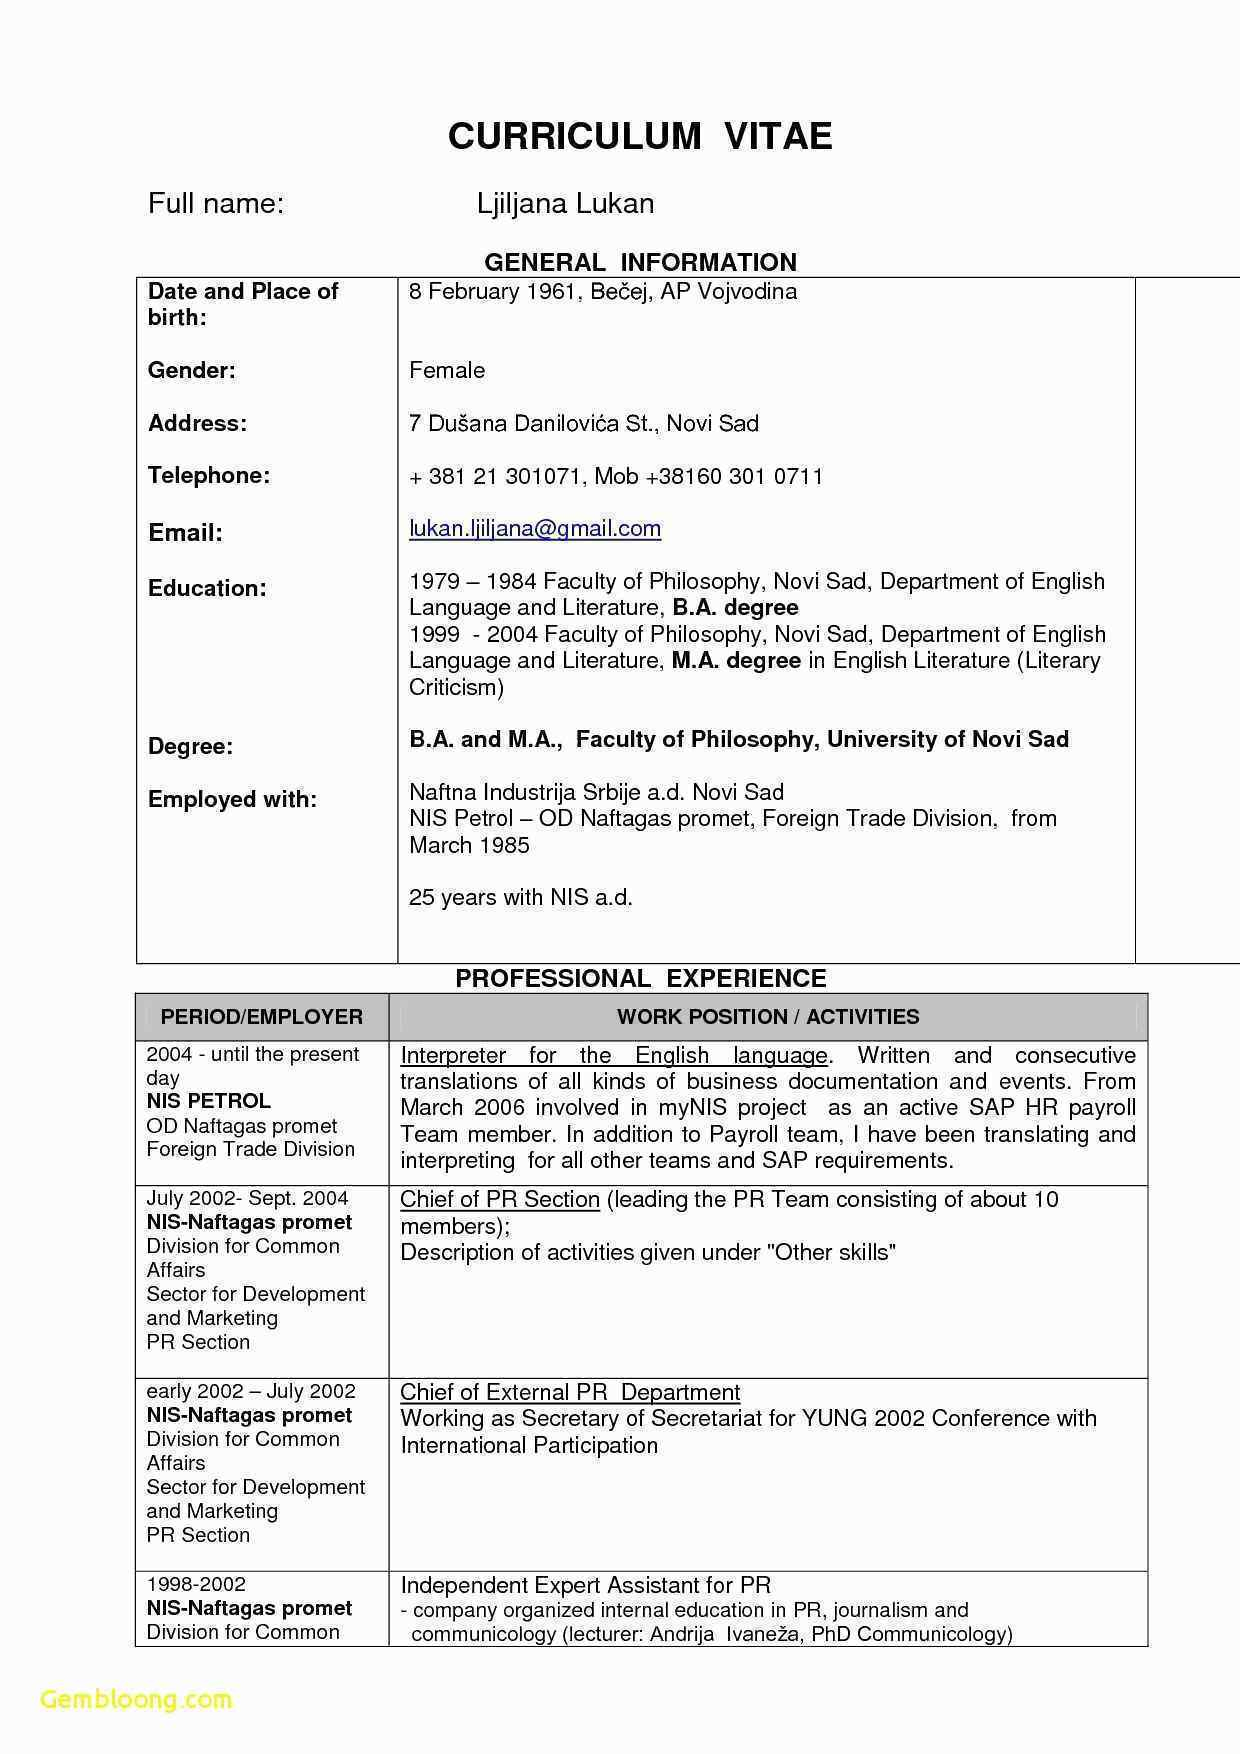 resume for law school application template Collection-law school application resume Lovely Resume format for Mba Student Lovely Mba Resume Template Create 20-r